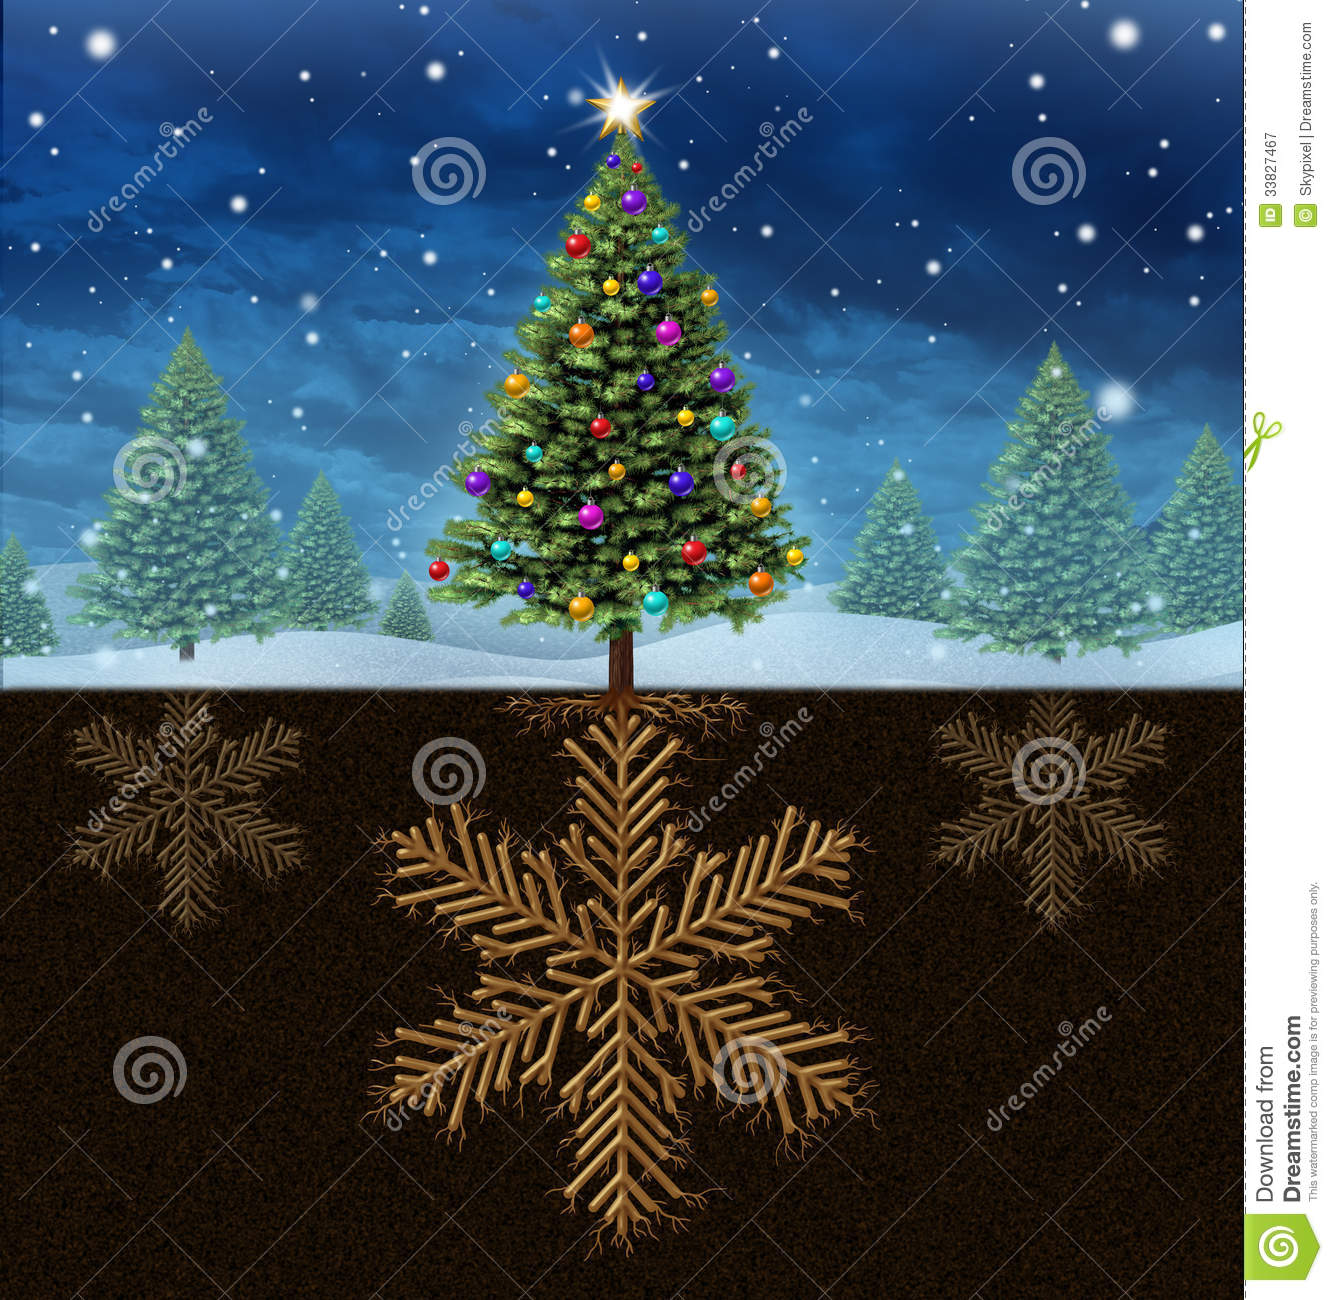 Rooted Christmas Tree: Christmas Roots Stock Illustration. Image Of Dimensional